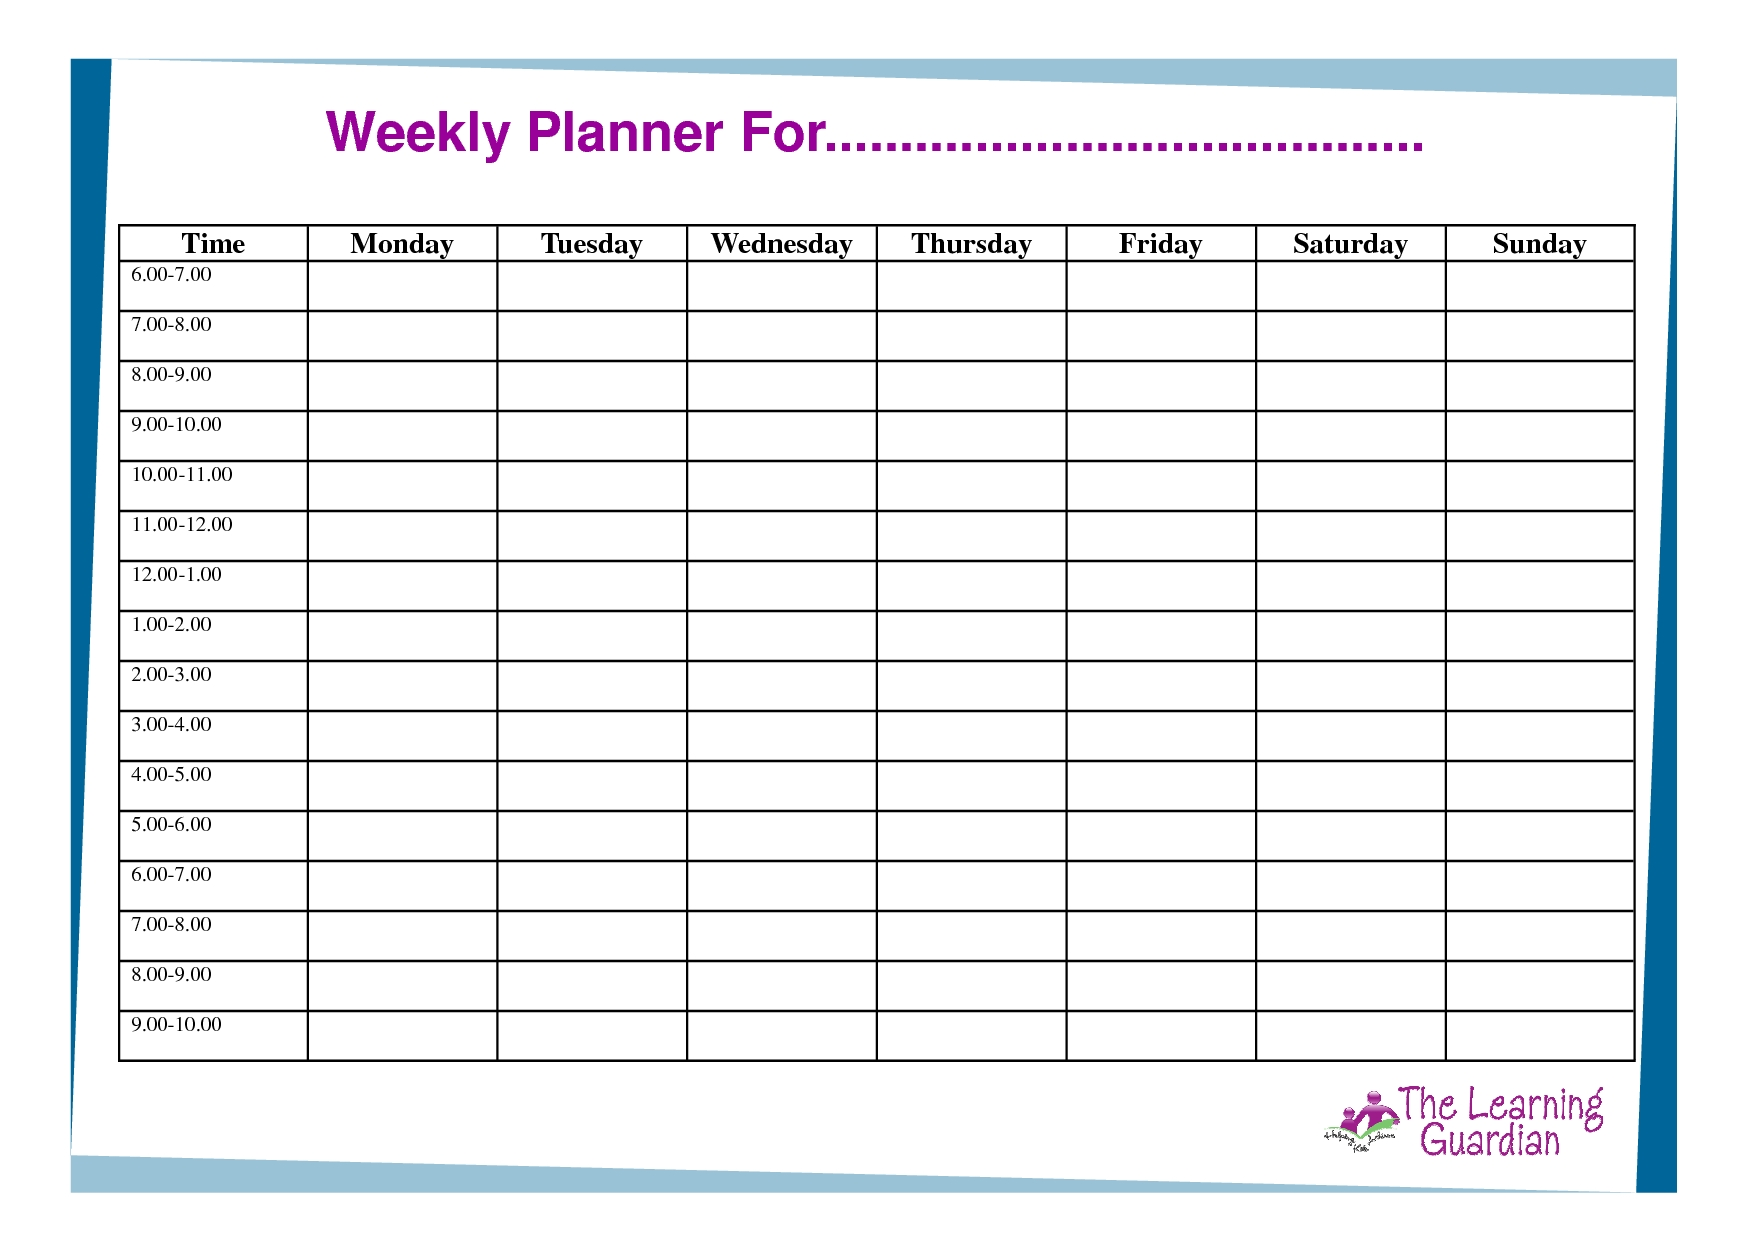 Free Printable Weekly Calendar Templates | Weekly Planner To Fill In Blank Calendar Monday Friday